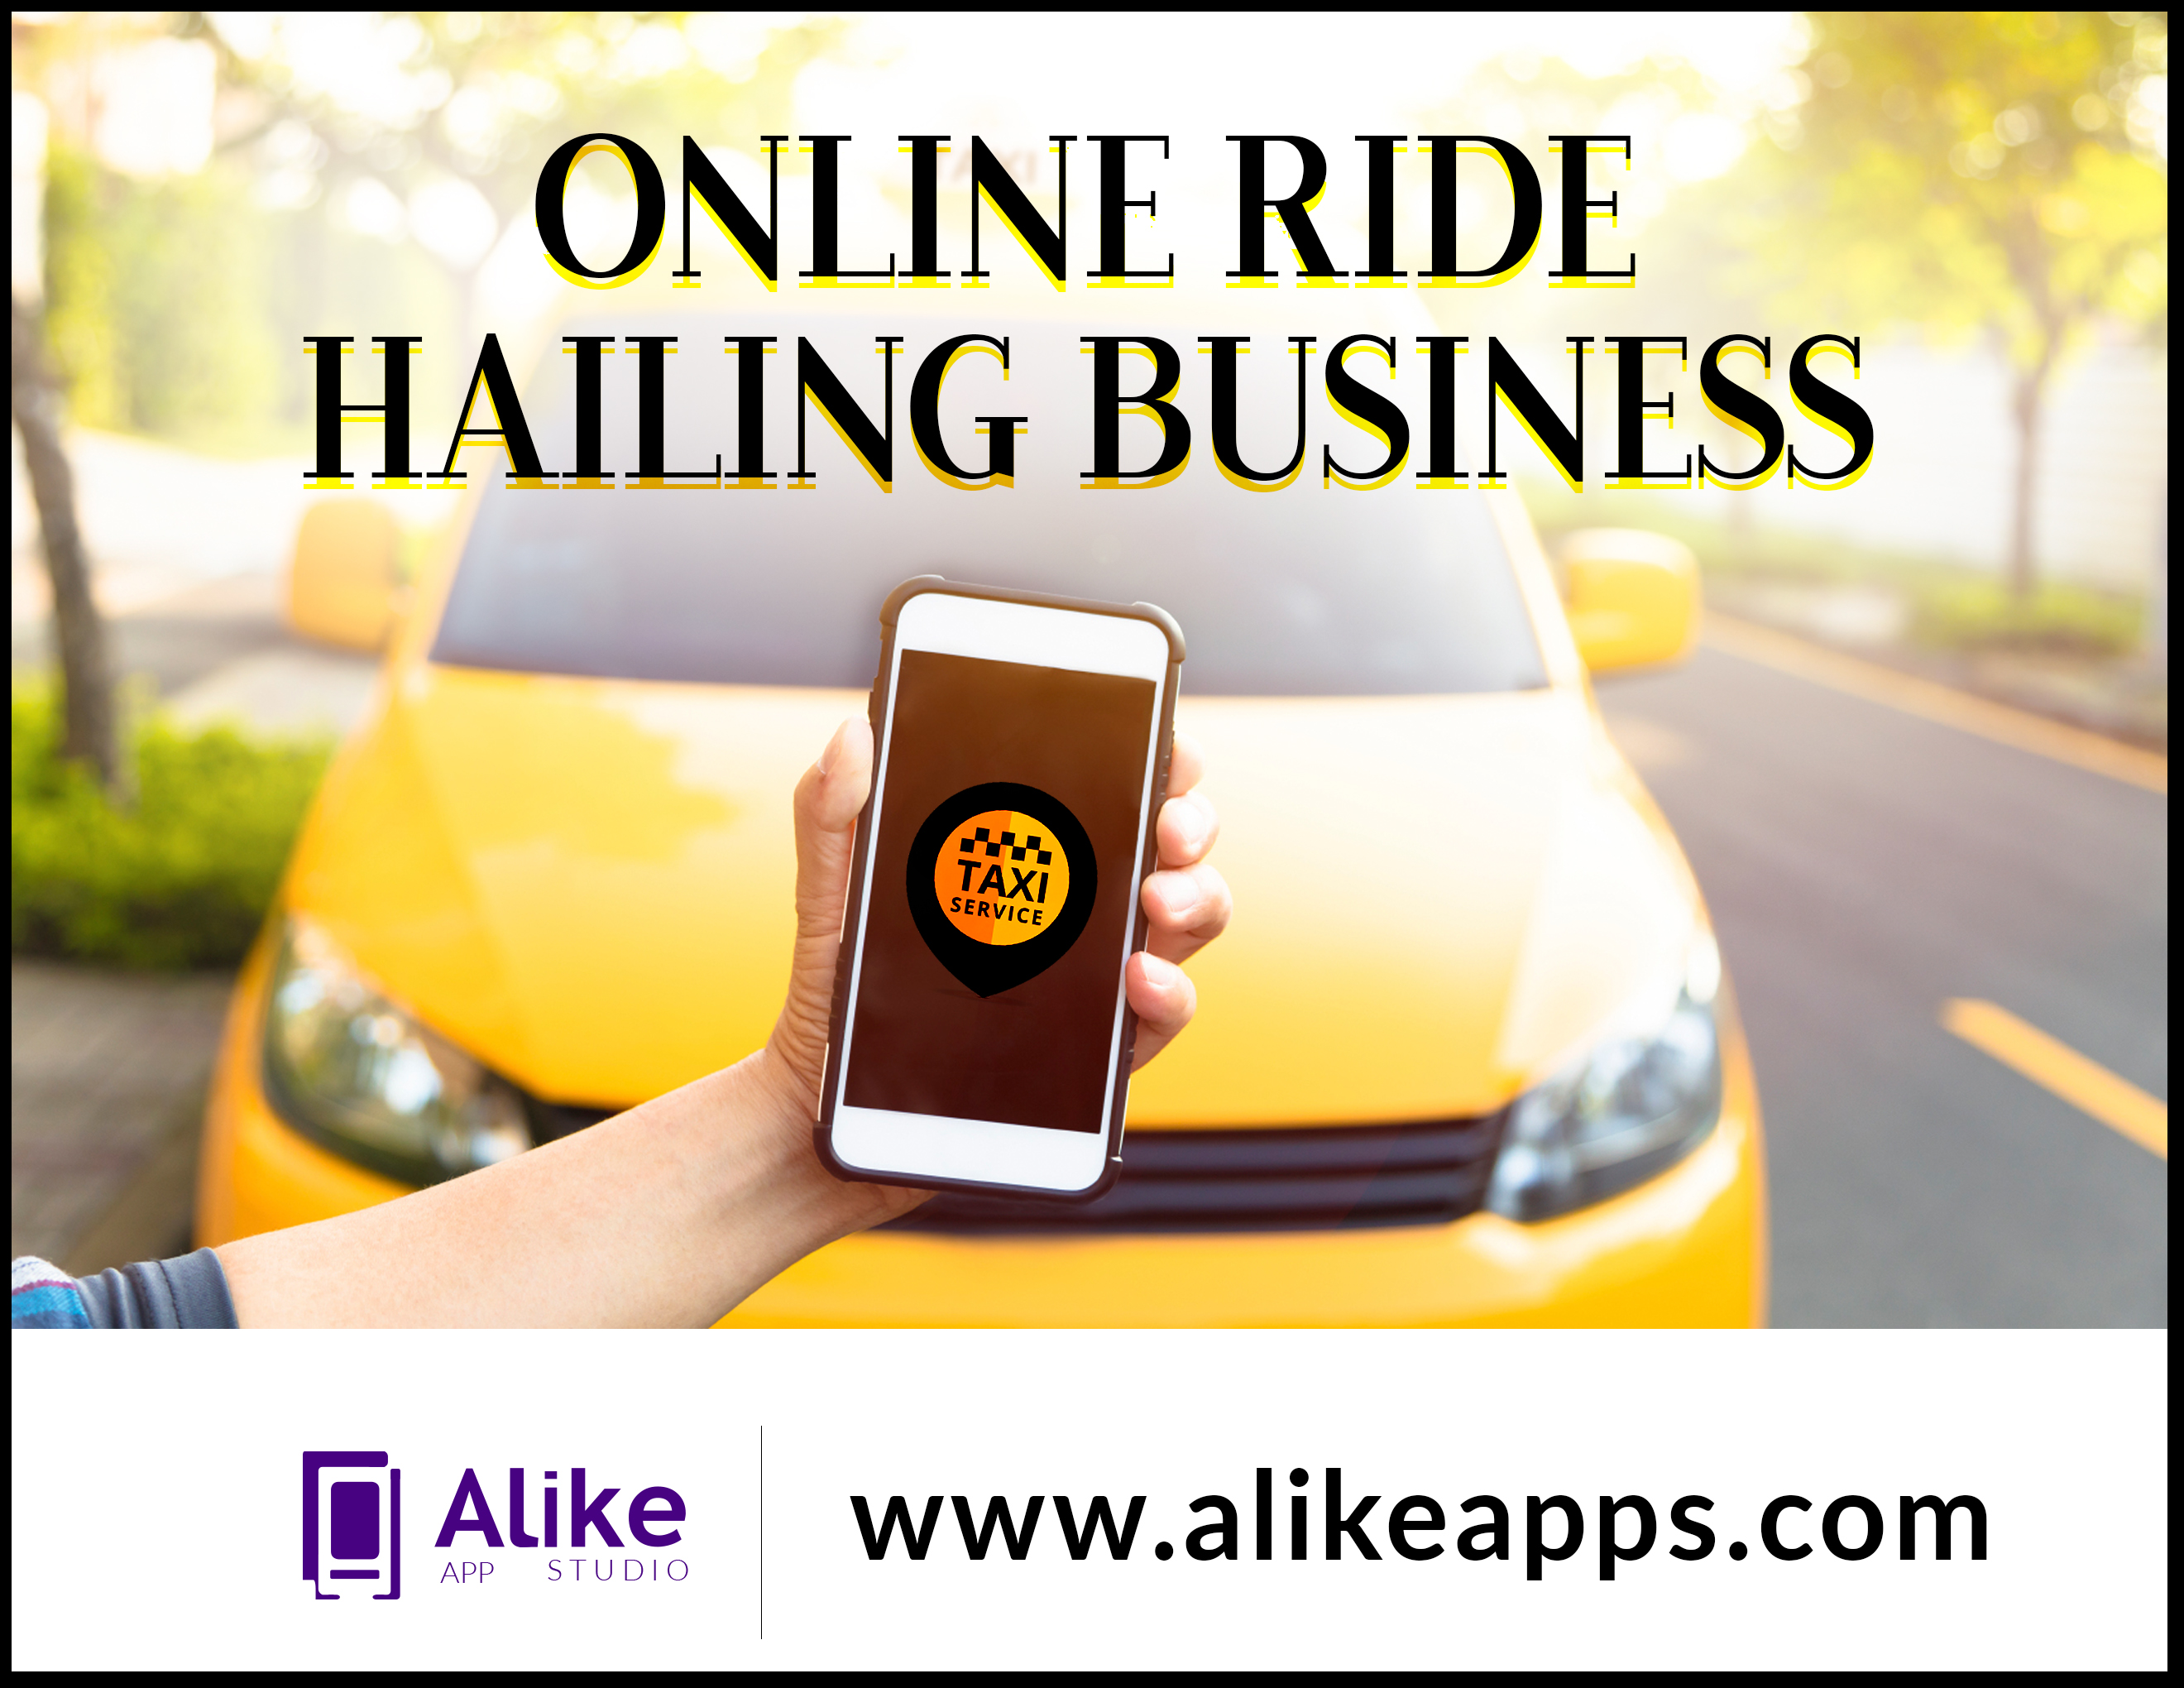 Create your own taxi hailing business